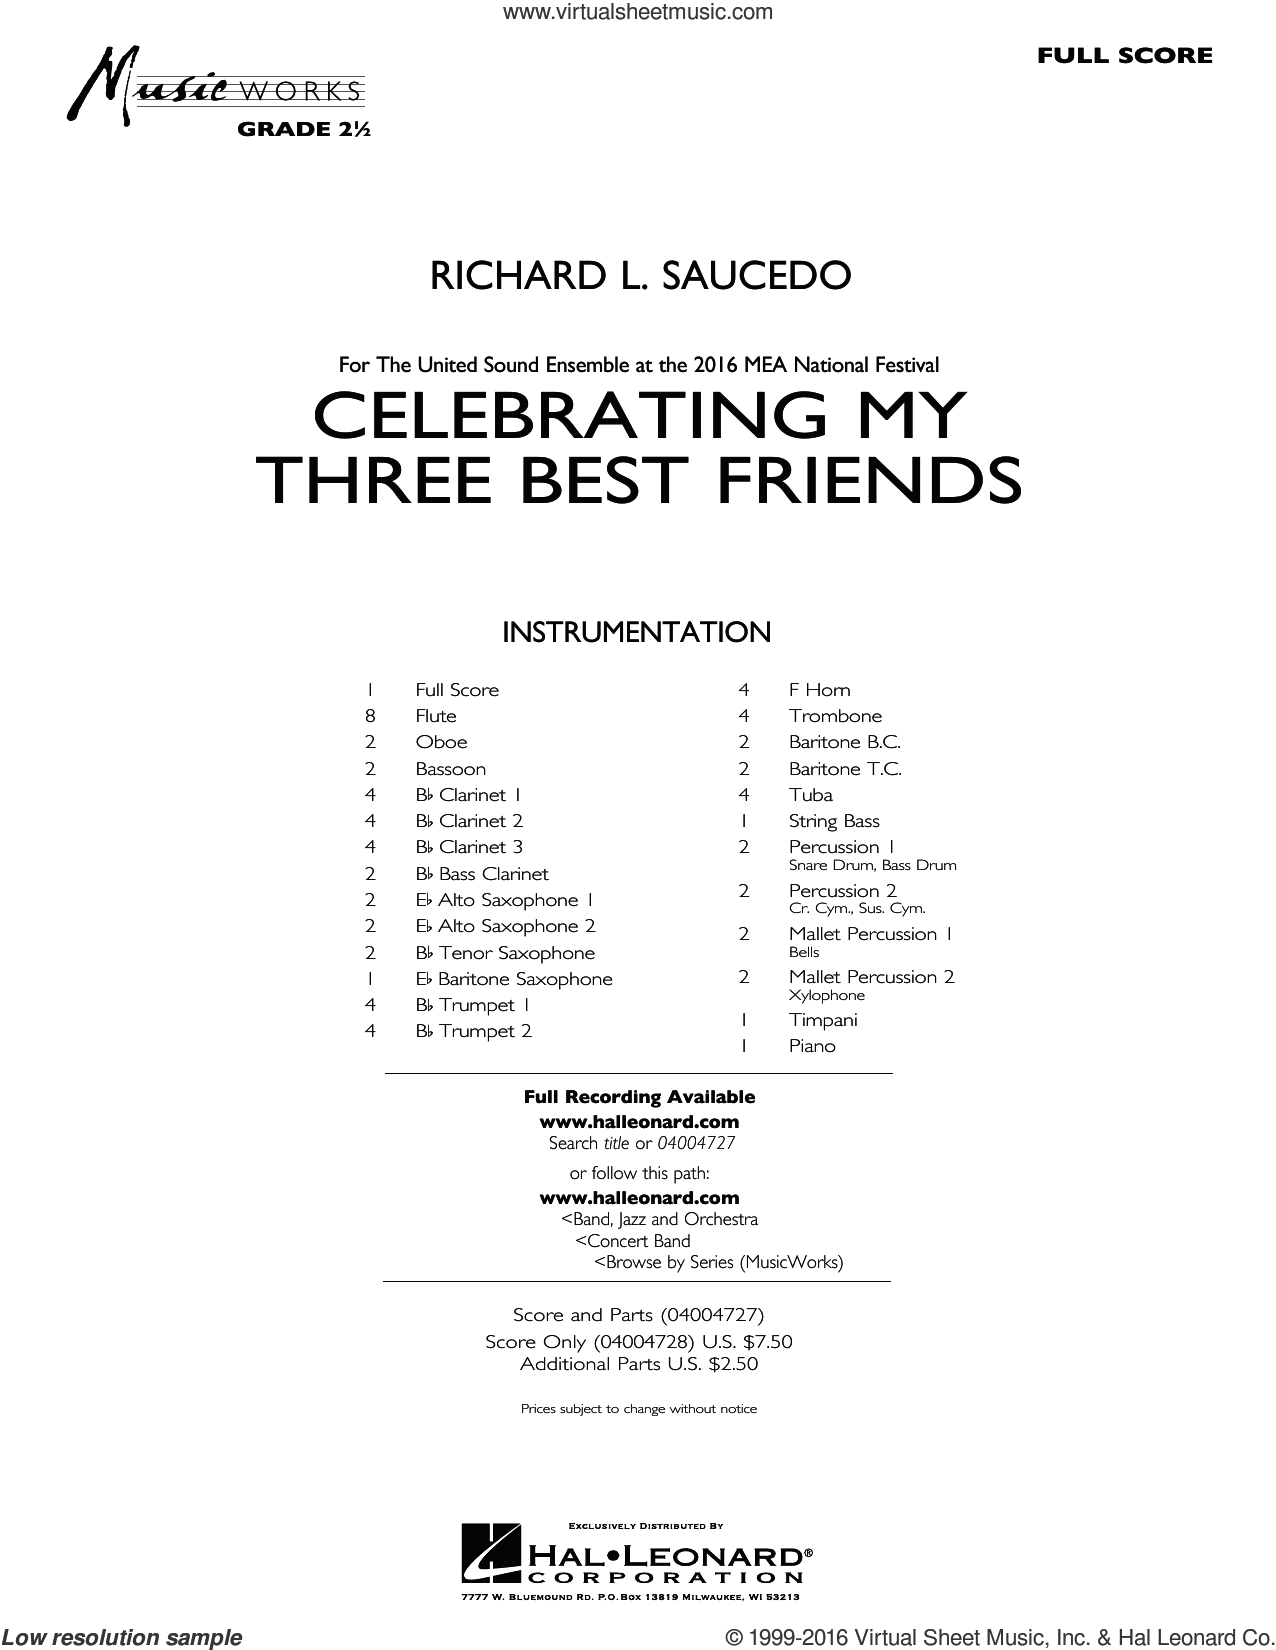 Celebrating My Three Best Friends (COMPLETE) sheet music for concert band by Richard L. Saucedo, intermediate. Score Image Preview.